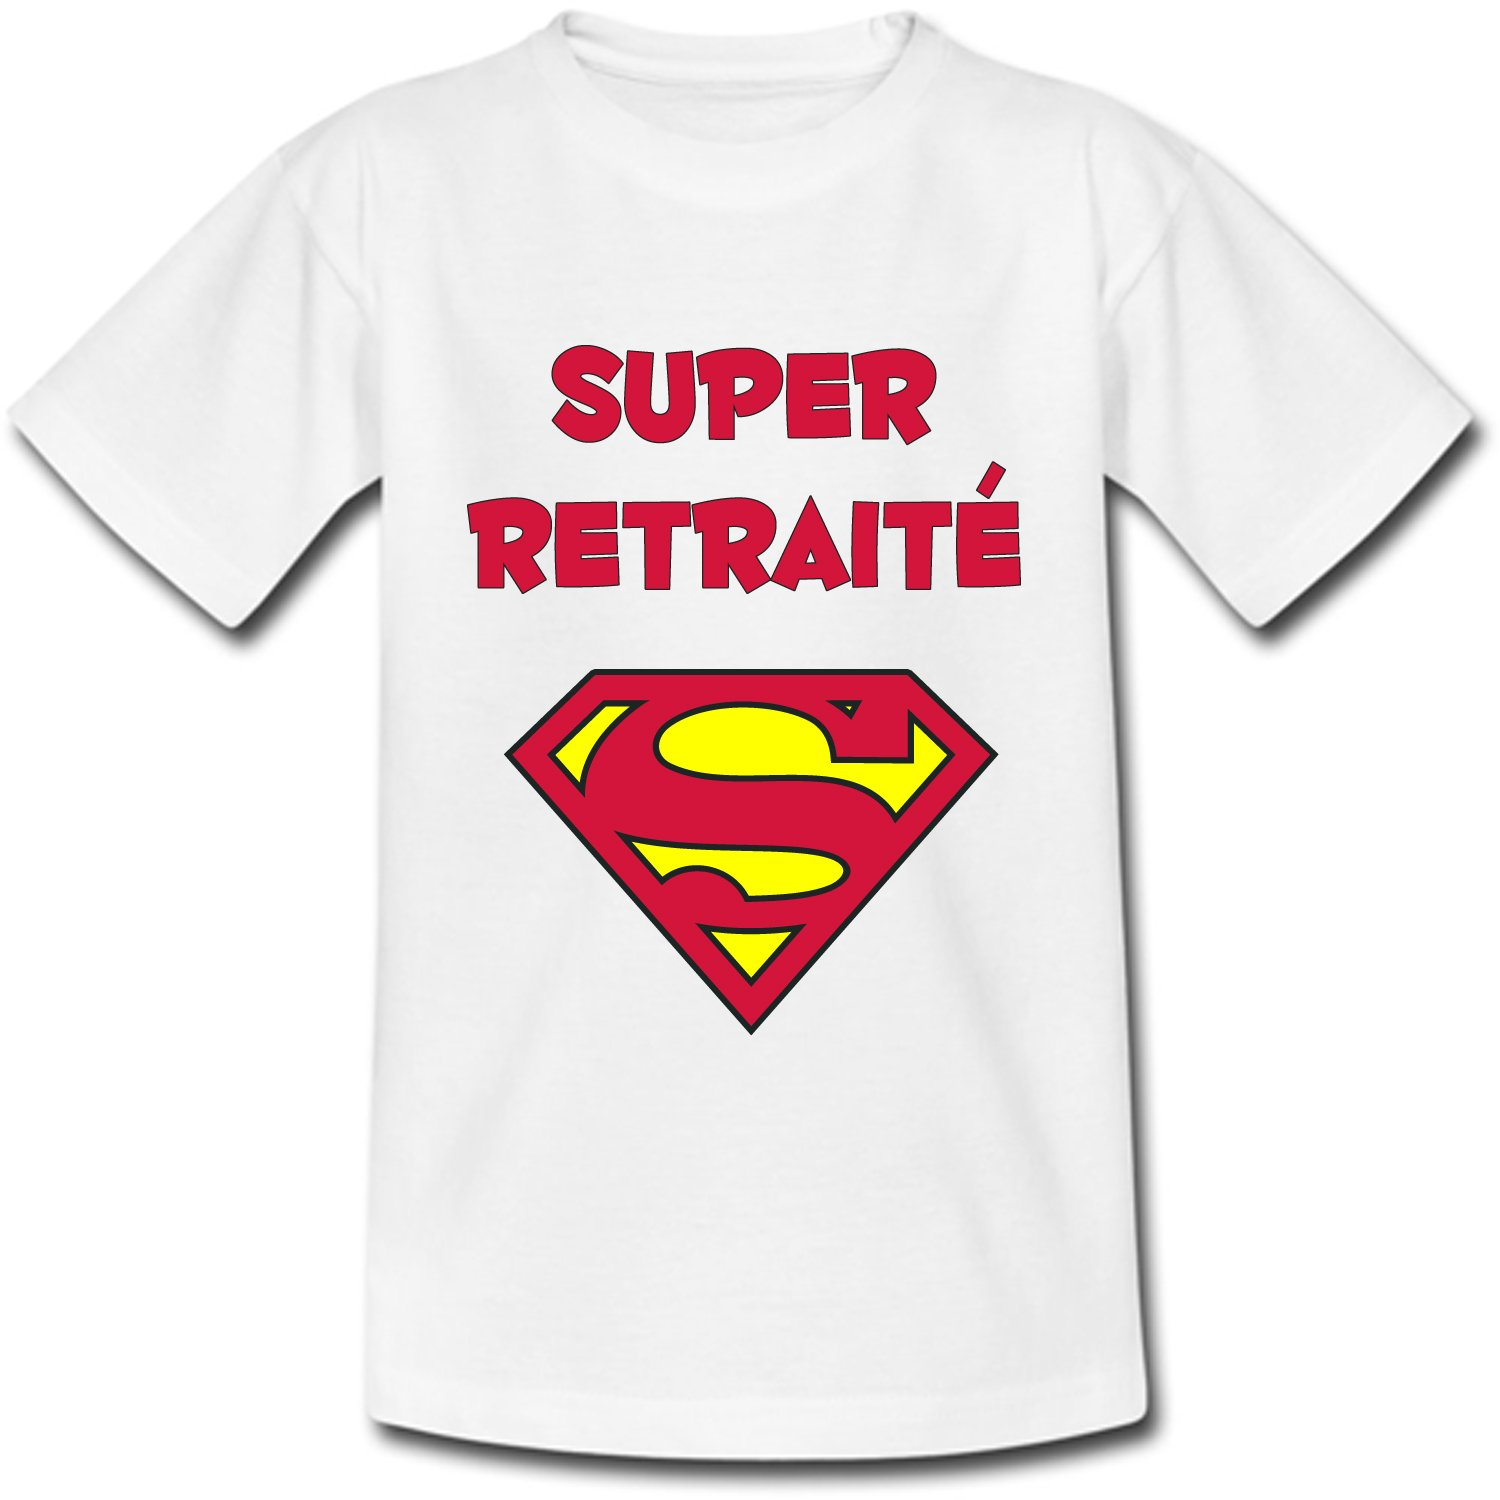 YONACREA T-Shirt Col V Adulte Superman Rose Super Retrait/ée